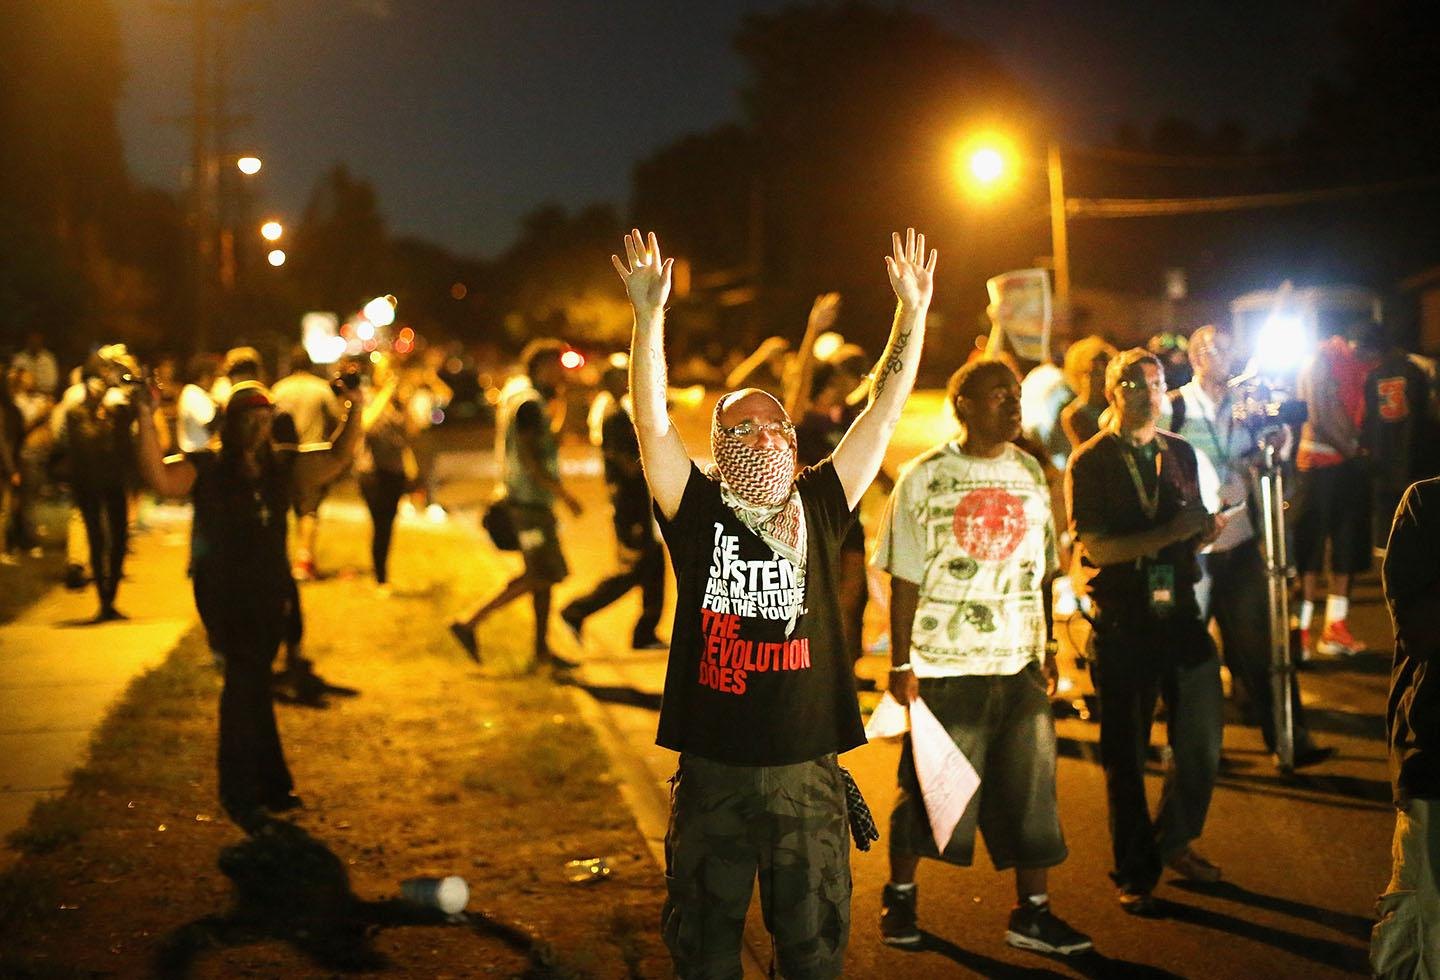 Demonstrators protest the shooting death of teenager Michael Brown on August 13, 2014 in Ferguson, Missouri.